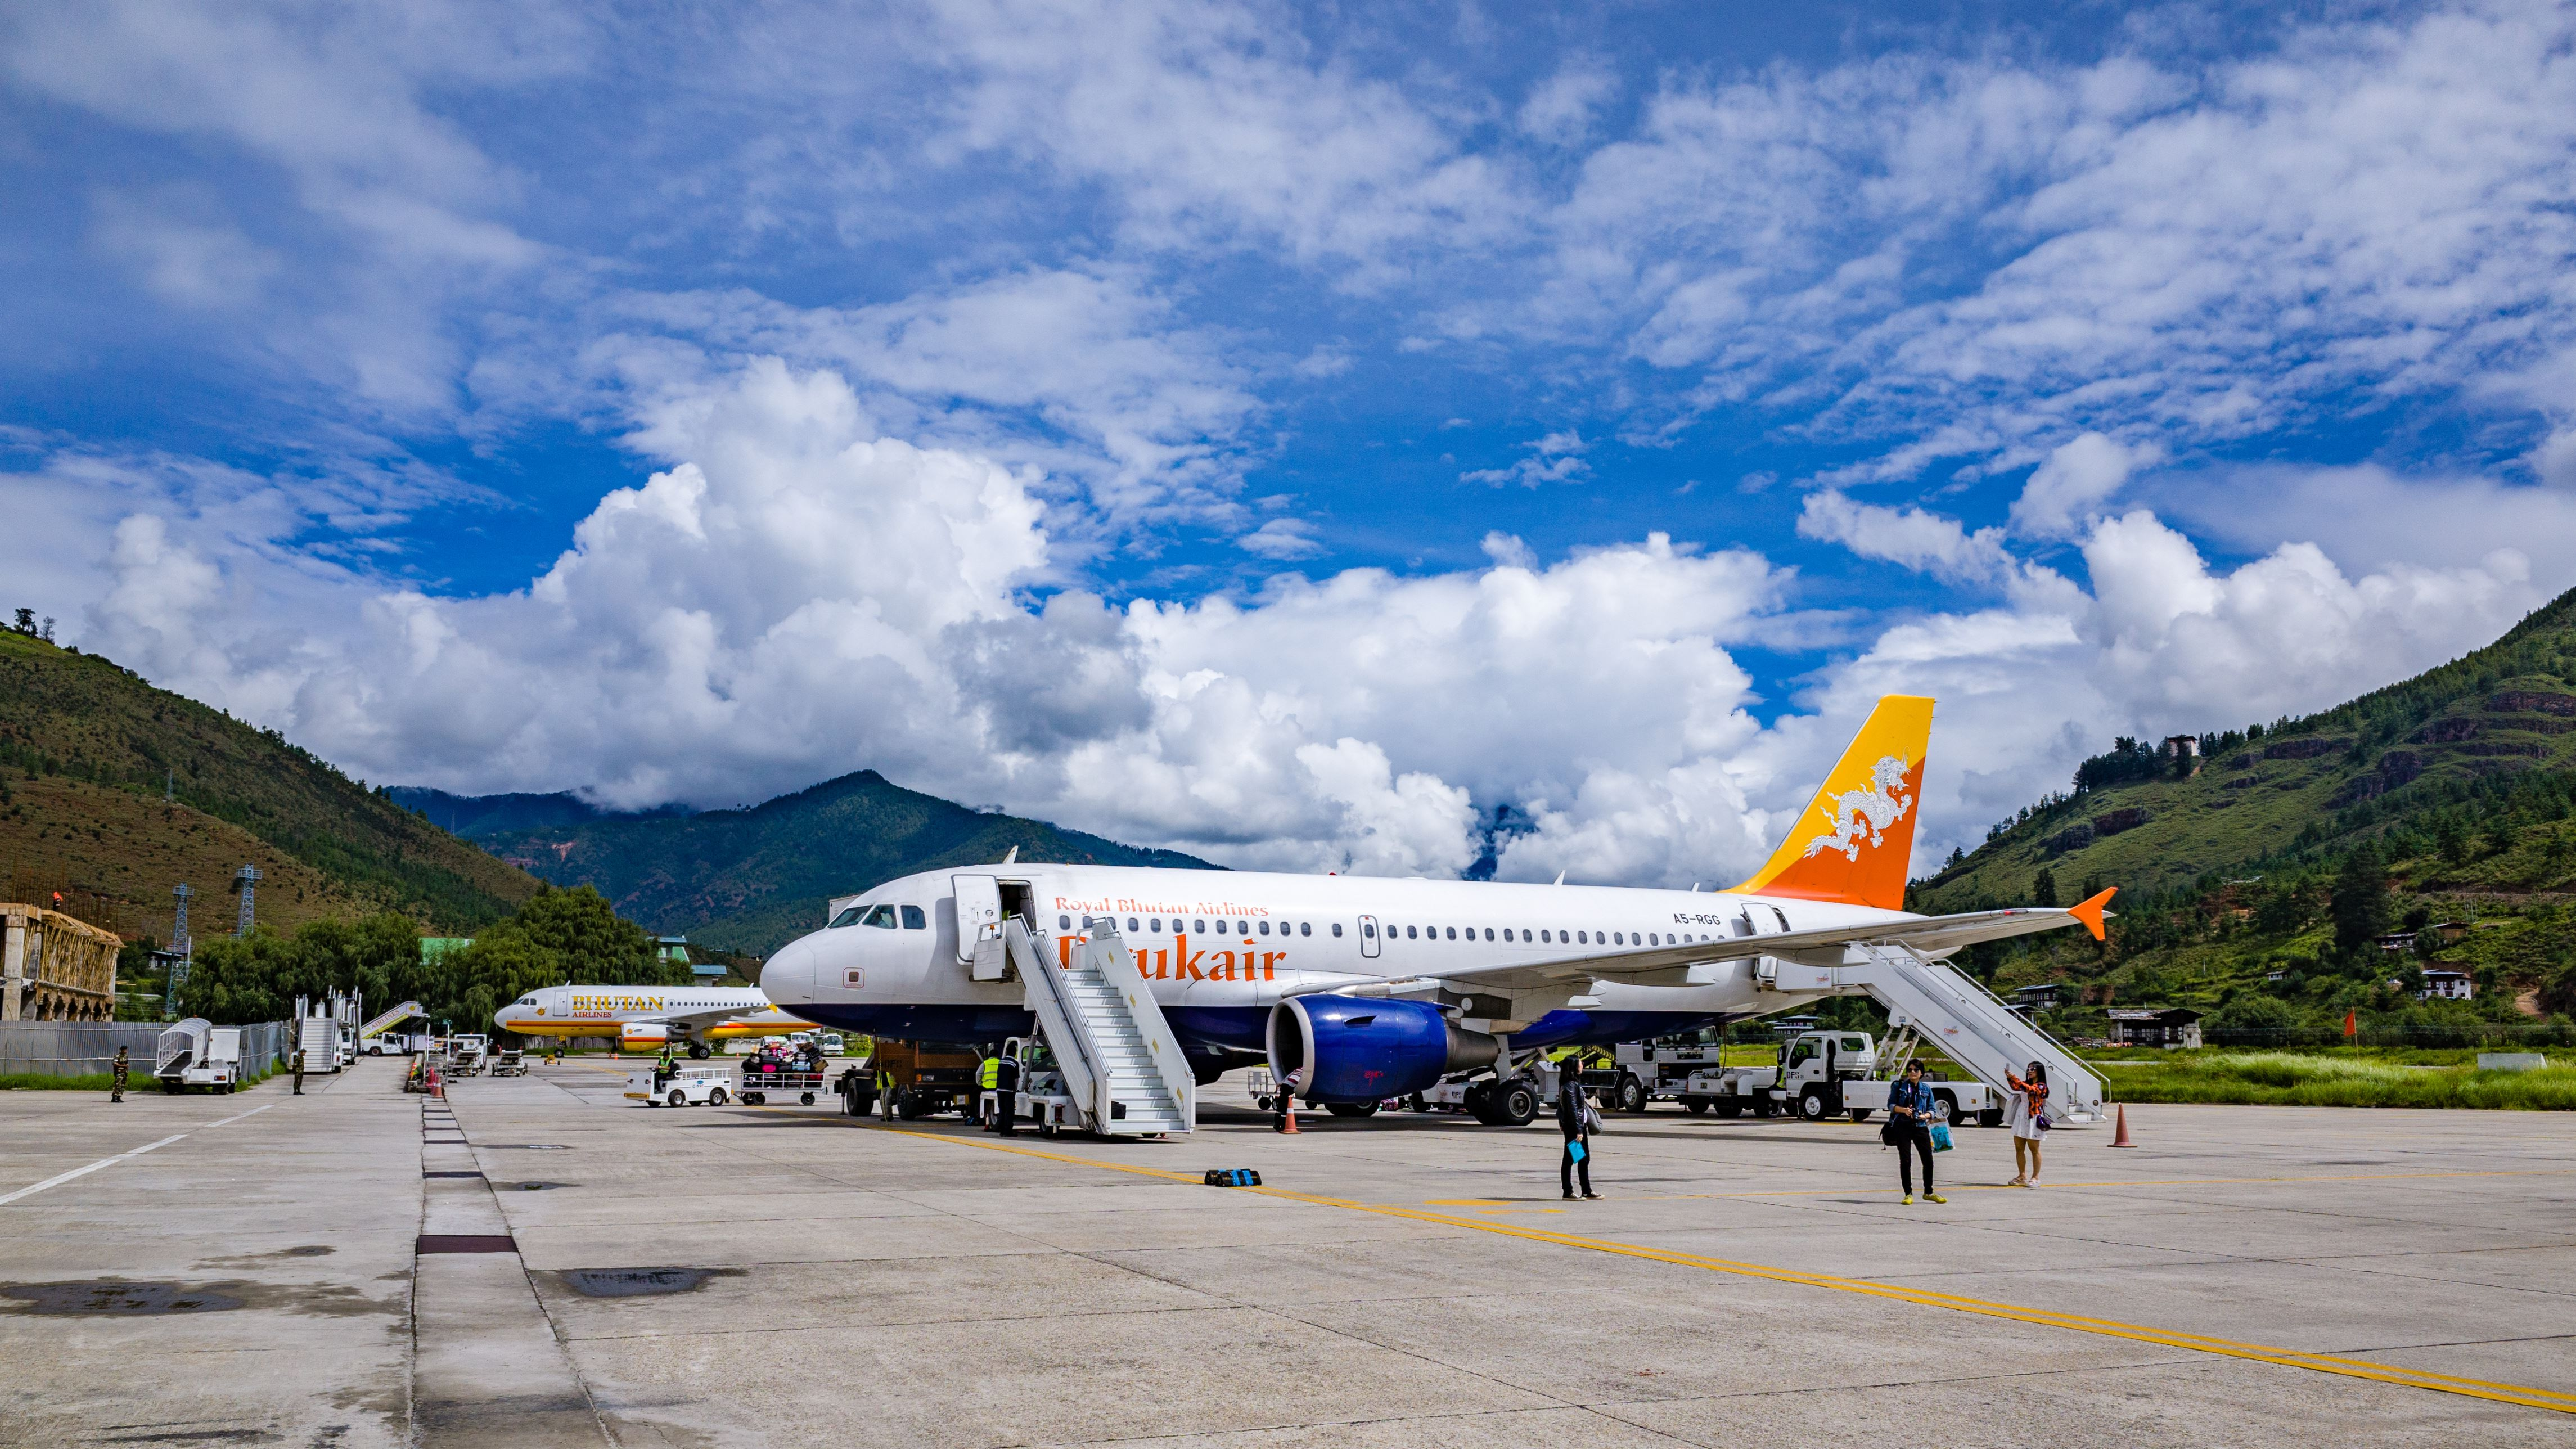 Slide 1 of 20: Paro: People arriving at Paro airport, Bhutan with druk air, the 'dragon airline', the only airline that is aloud to land in Bhutan. In the background are the mountains.